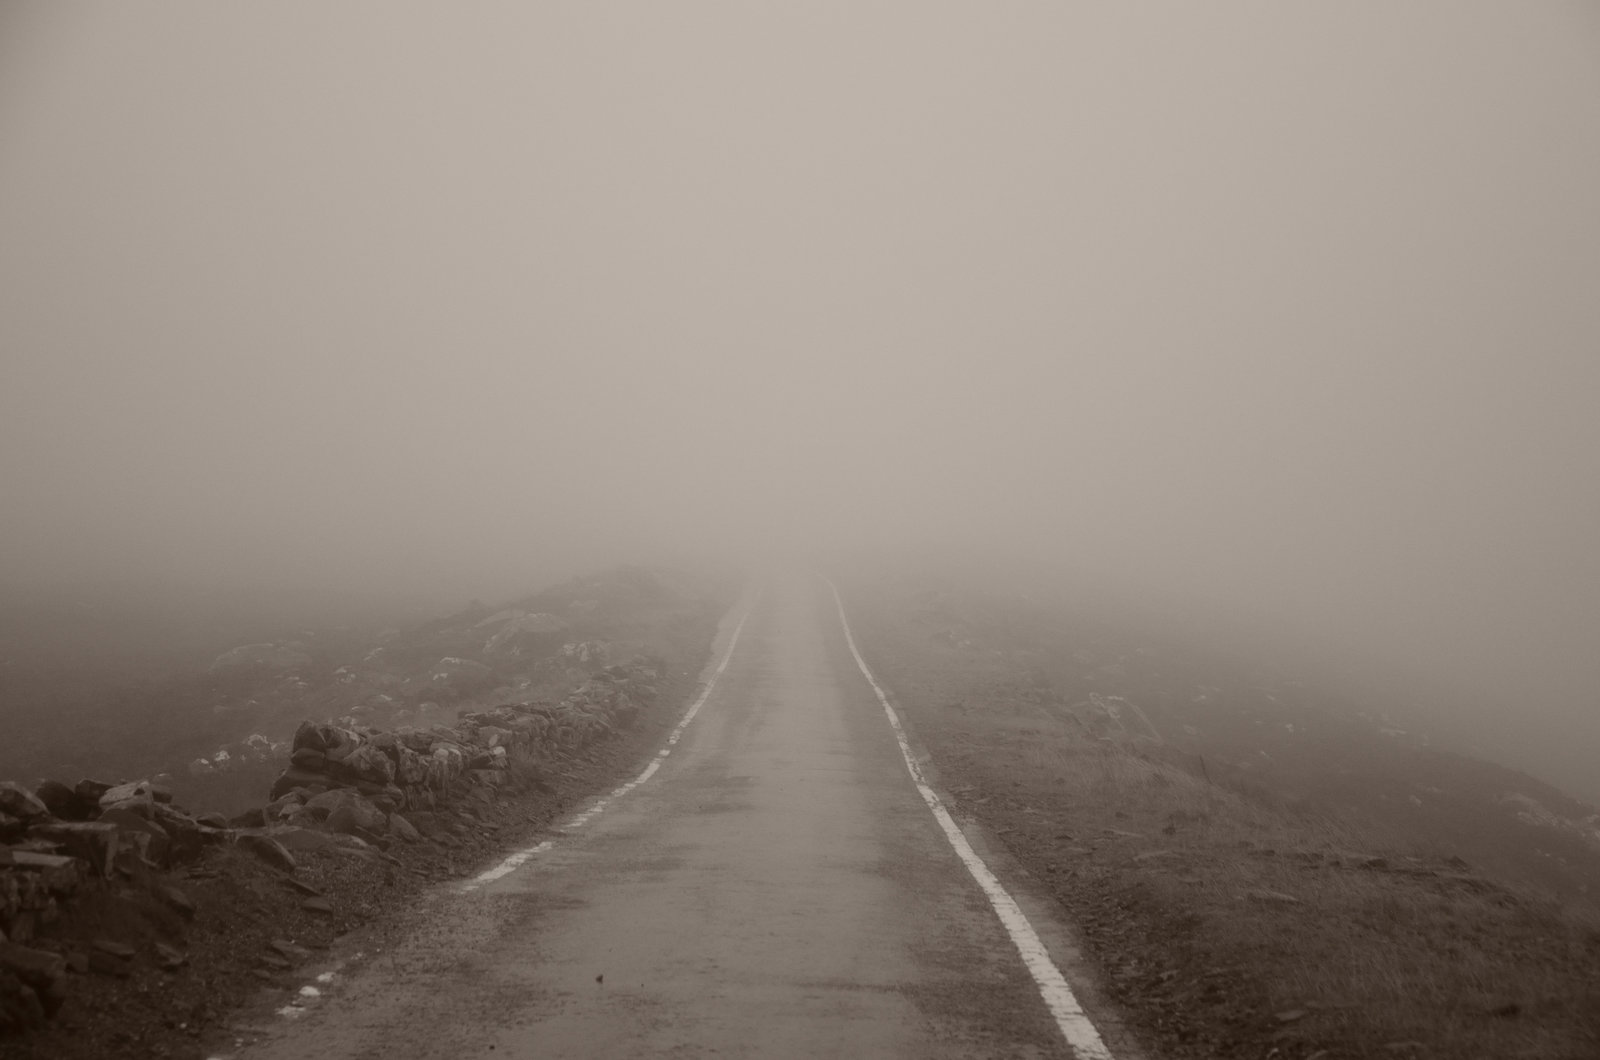 the_road_to_nothingness_by_tingil-d8829bn.jpg